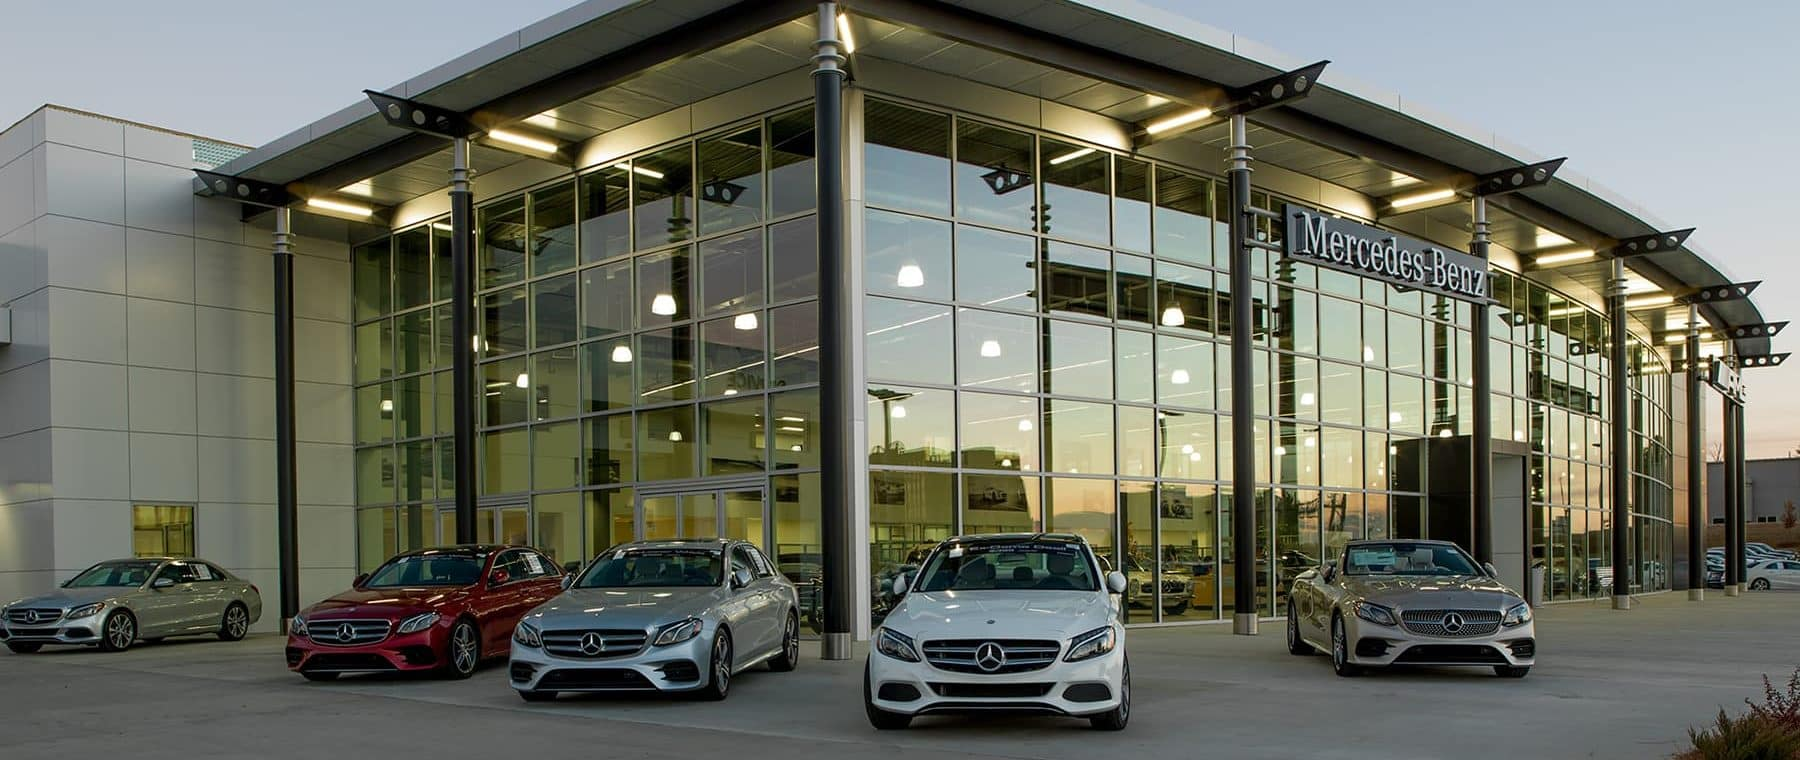 Mercedes benz of jackson mississippi luxury car dealer for Mercedes benz financial contact number